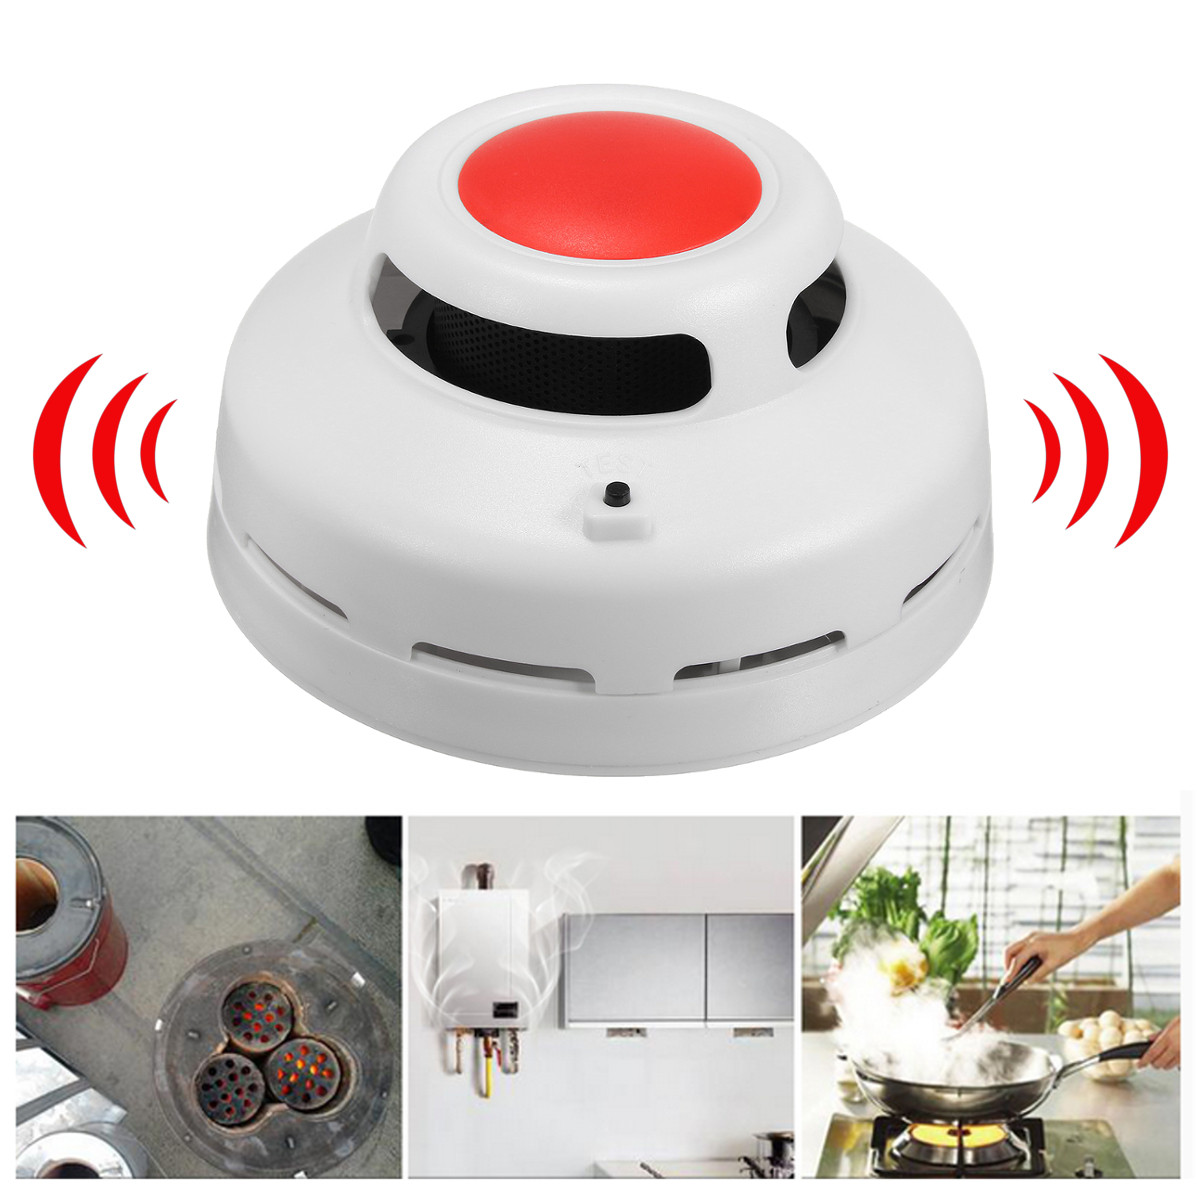 2 in 1 Battery Operated Combination Carbon Monoxide CO & Smoke Detector Alarm High Sensitive Photoelectric Tester Battery Operated with Digital Display for CO Level SP